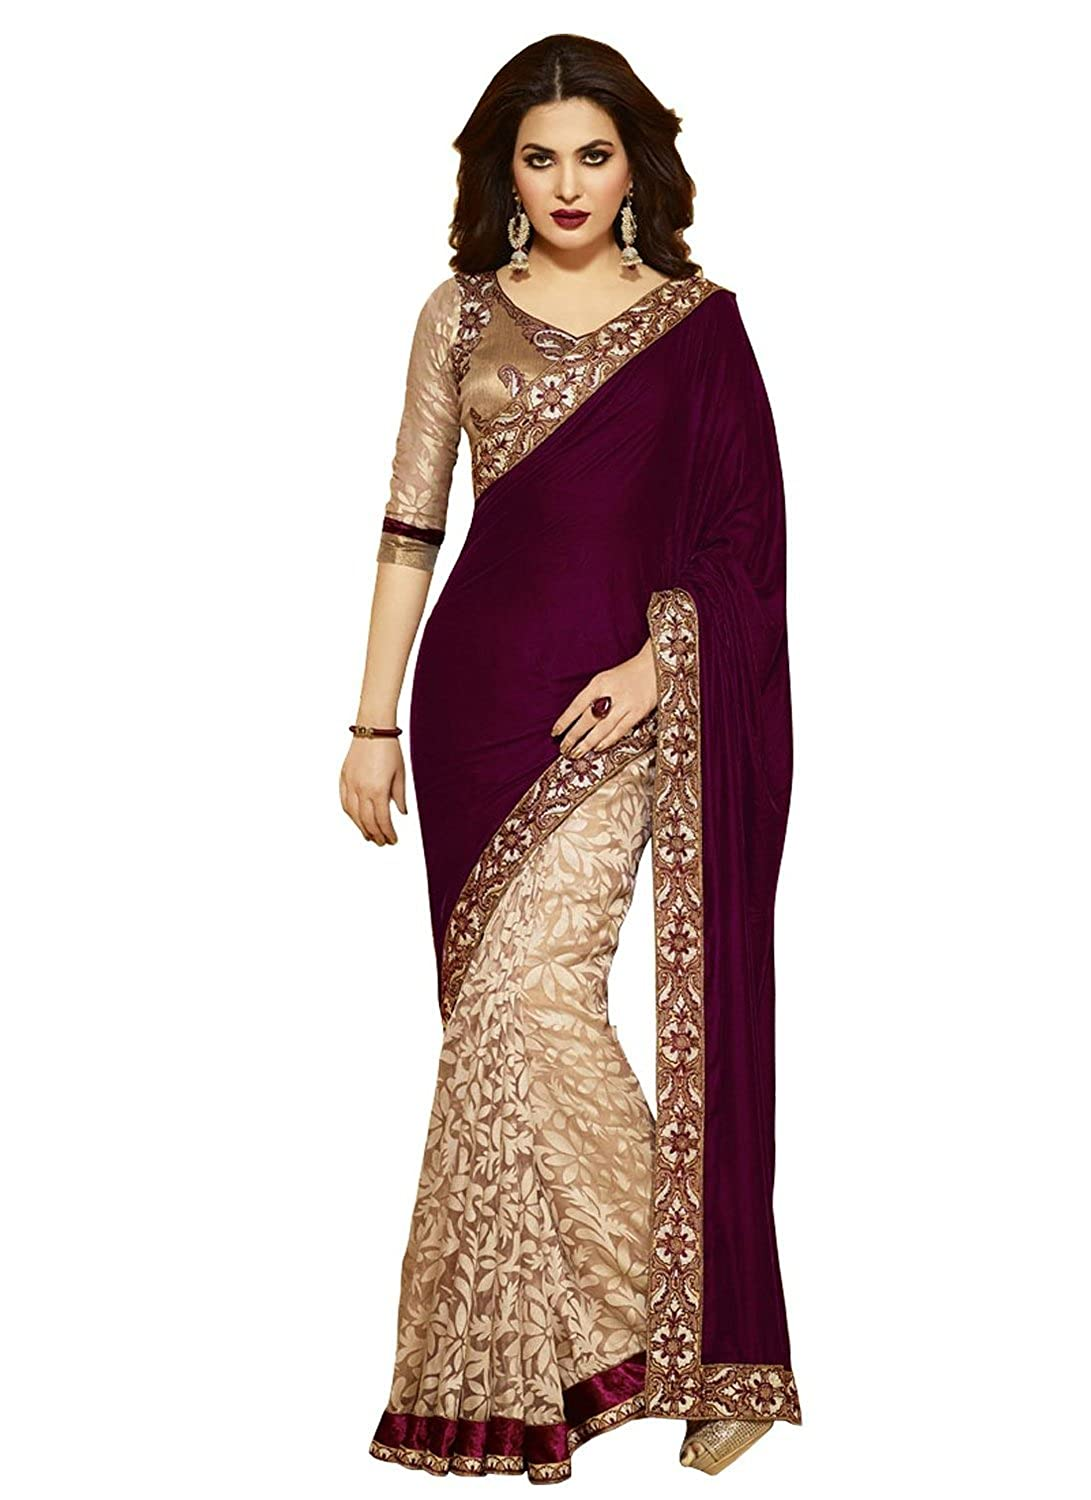 Woman Designer Ethnic Party Wear Bollywood Replica Georgette Saree Indian Sari